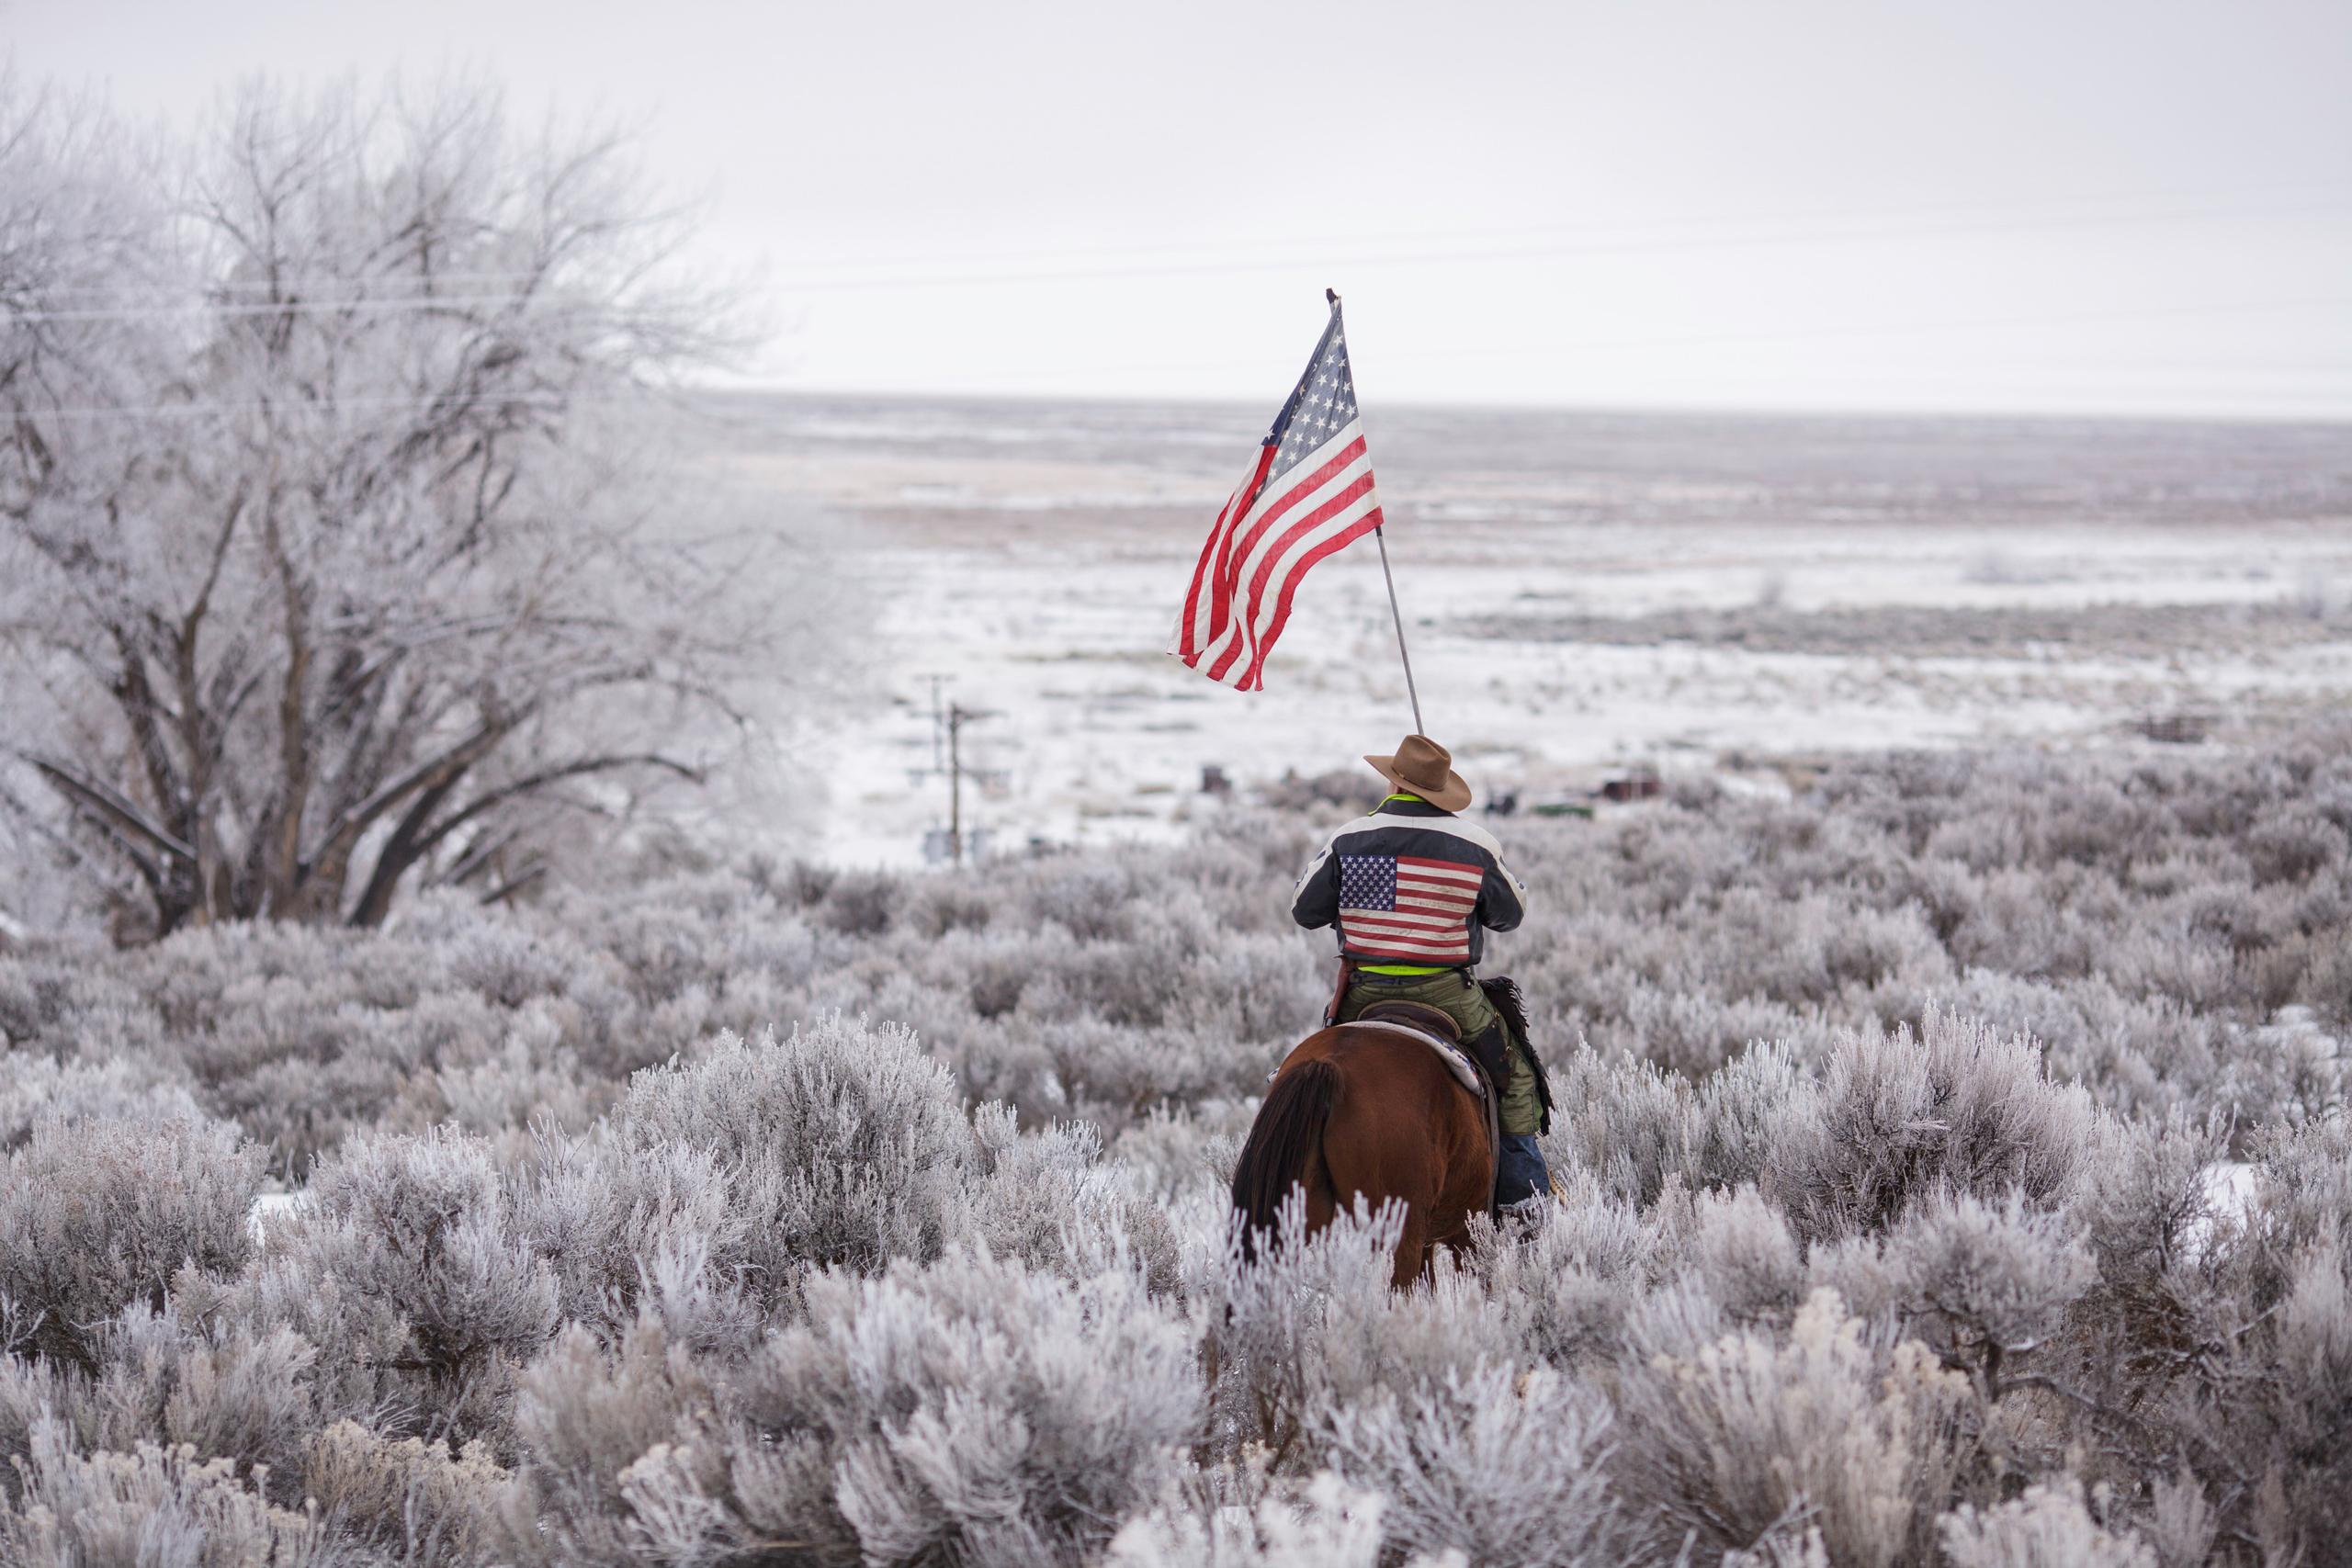 Duane Ehmer rides his horse Hellboy at the occupied Malheur National Wildlife Refuge on the sixth day of the occupation of the federal building in Burns, Oregon, on Jan. 7, 2016.